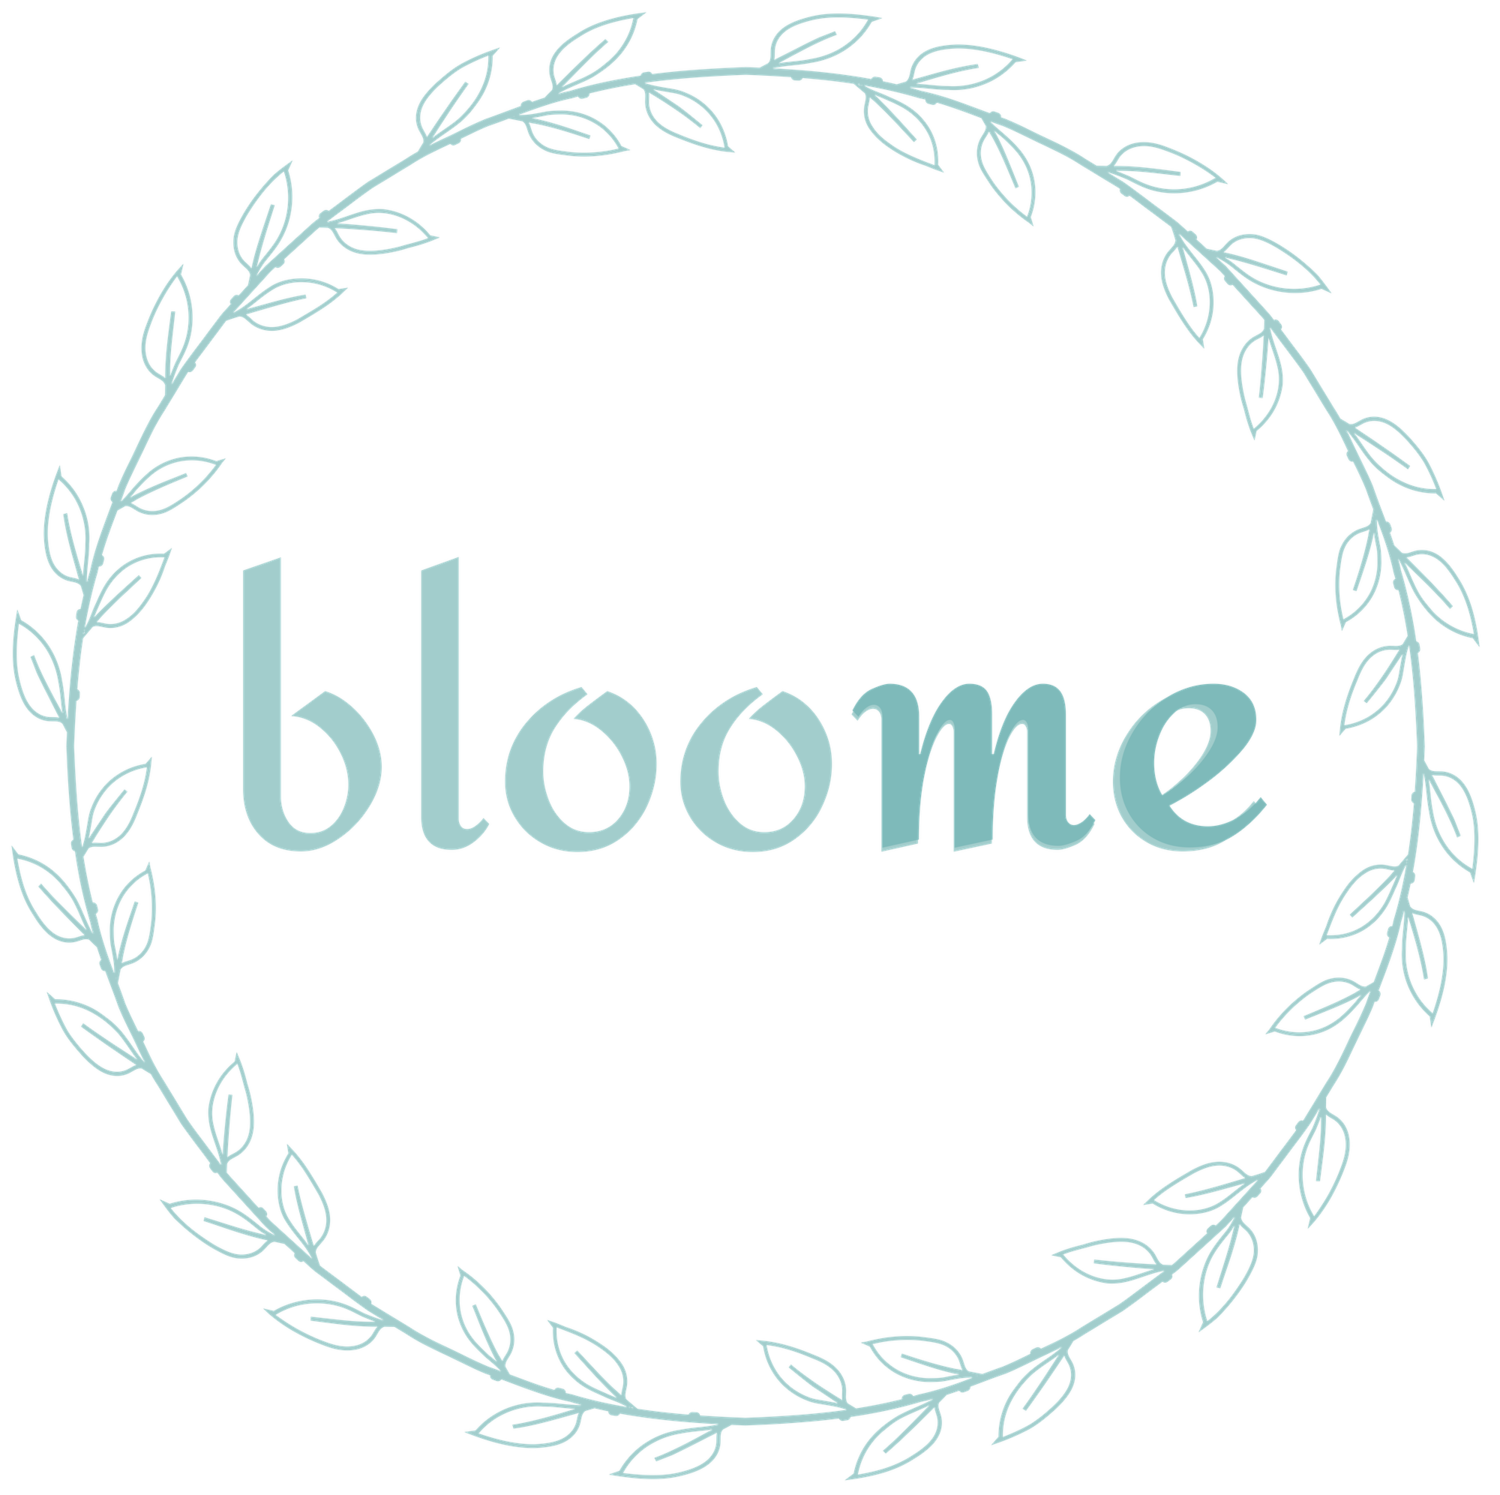 Bloome